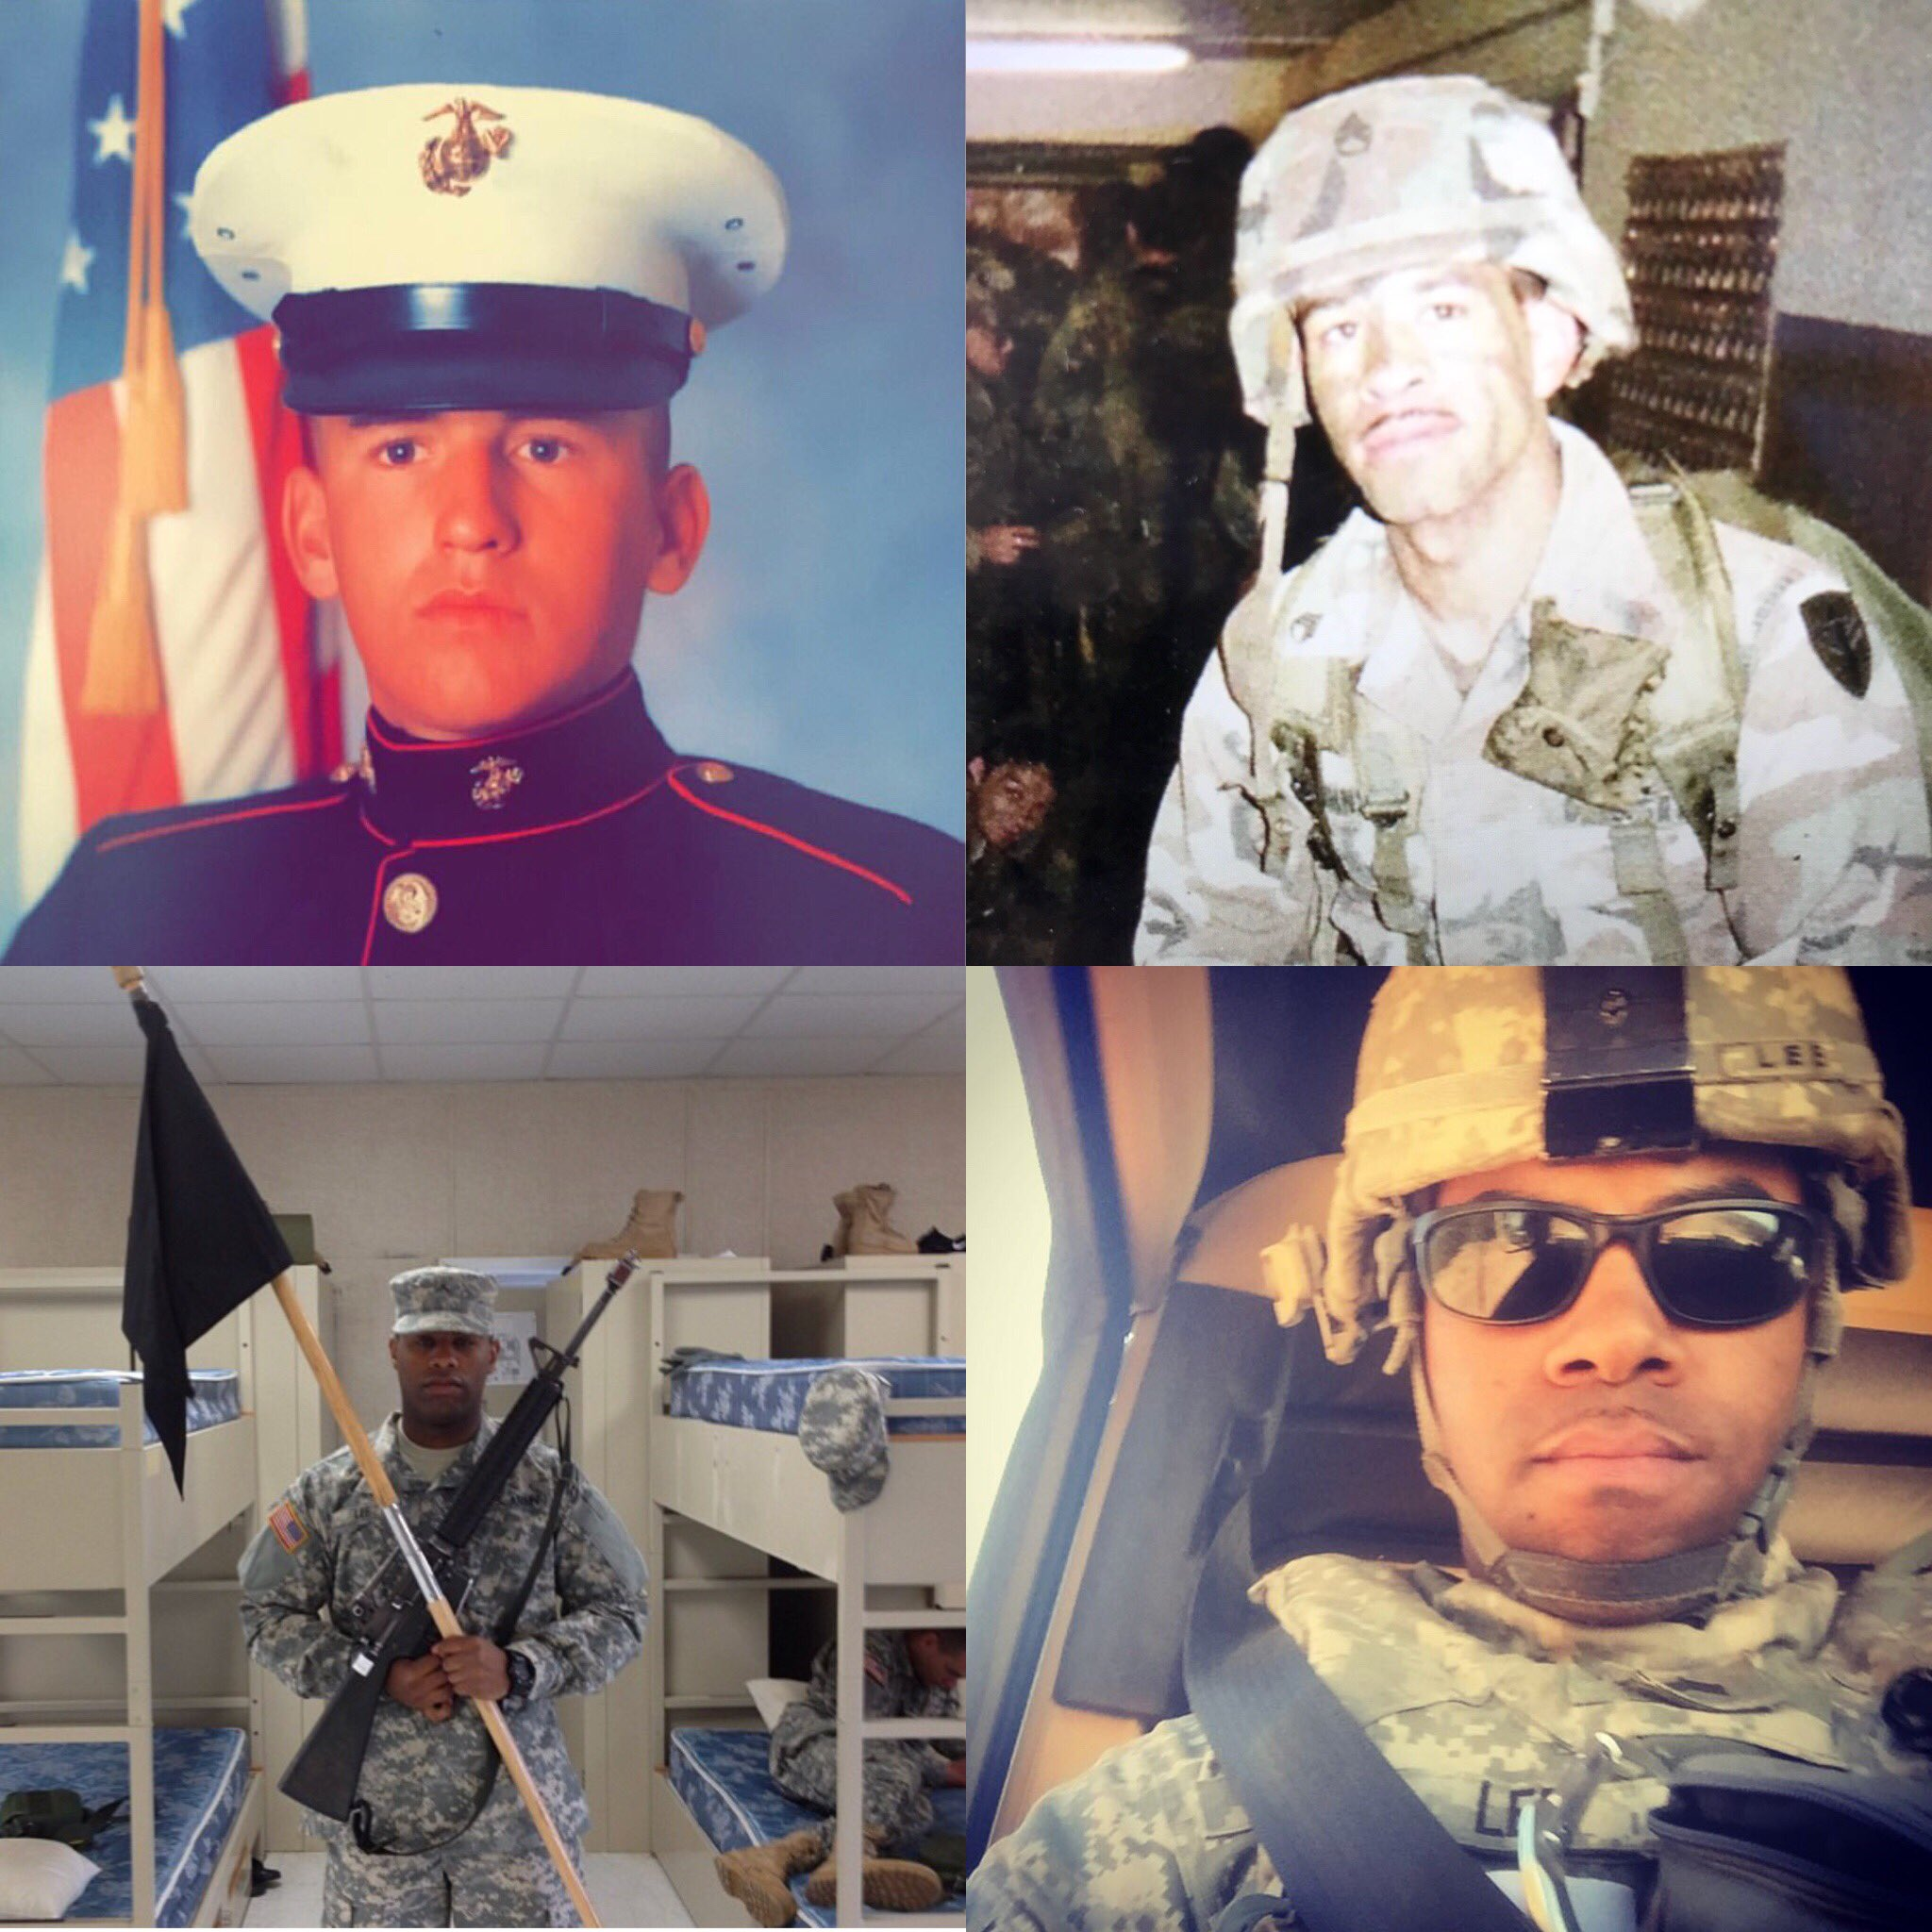 Home of the free because of the BRAVE. Especially proud of these four men in uniform. Happy Veterans Day! https://t.co/S95vAgDi81